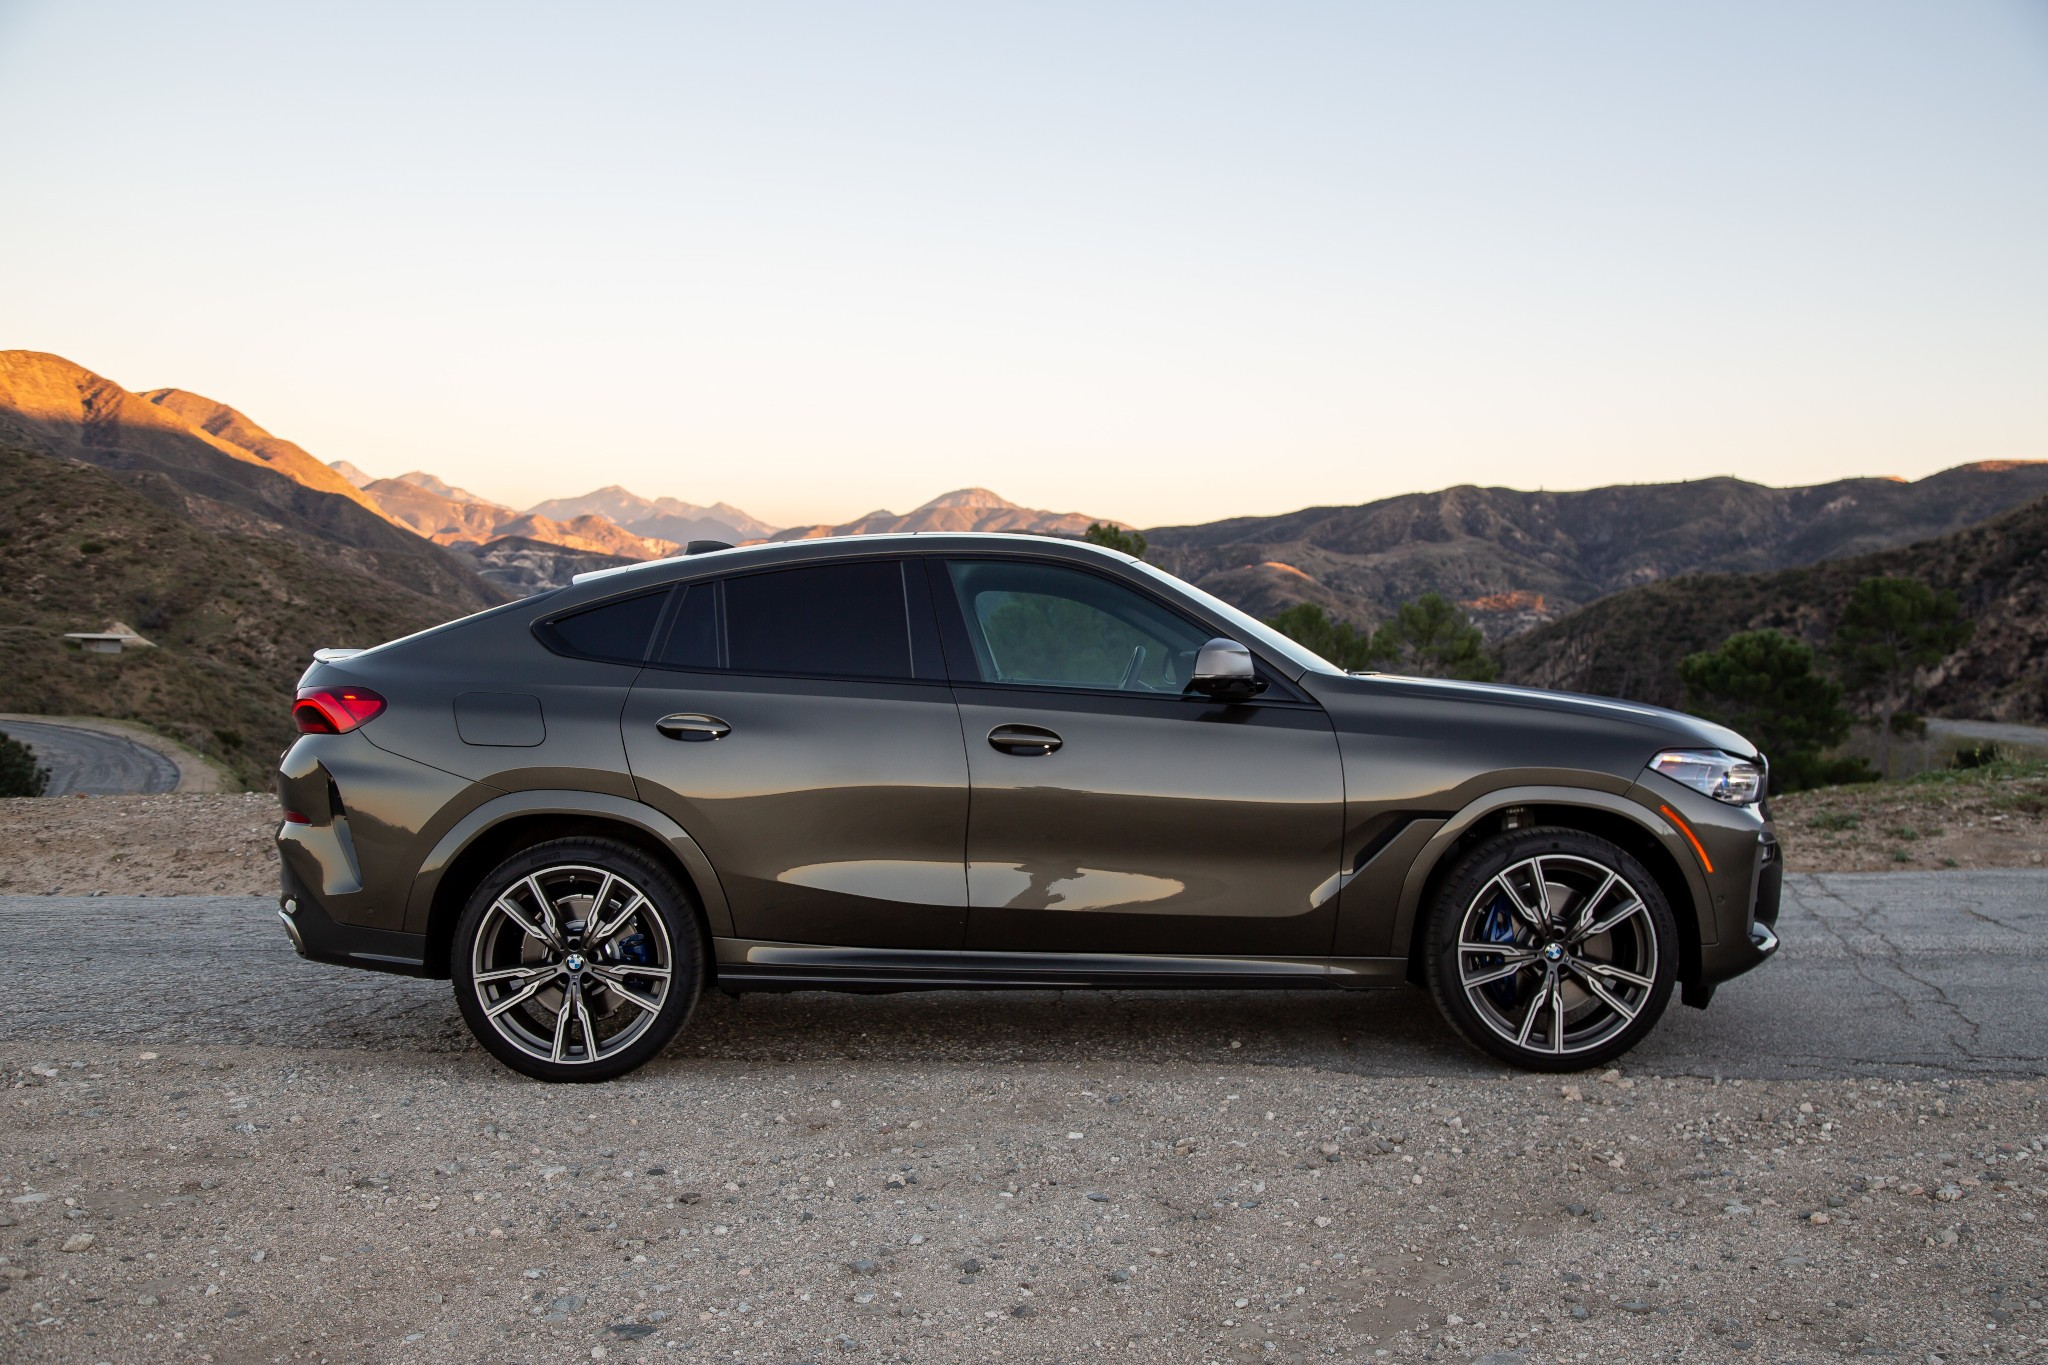 bmw-x6-m50i-2020-6-exterior--grey--mountains--profile.jpg